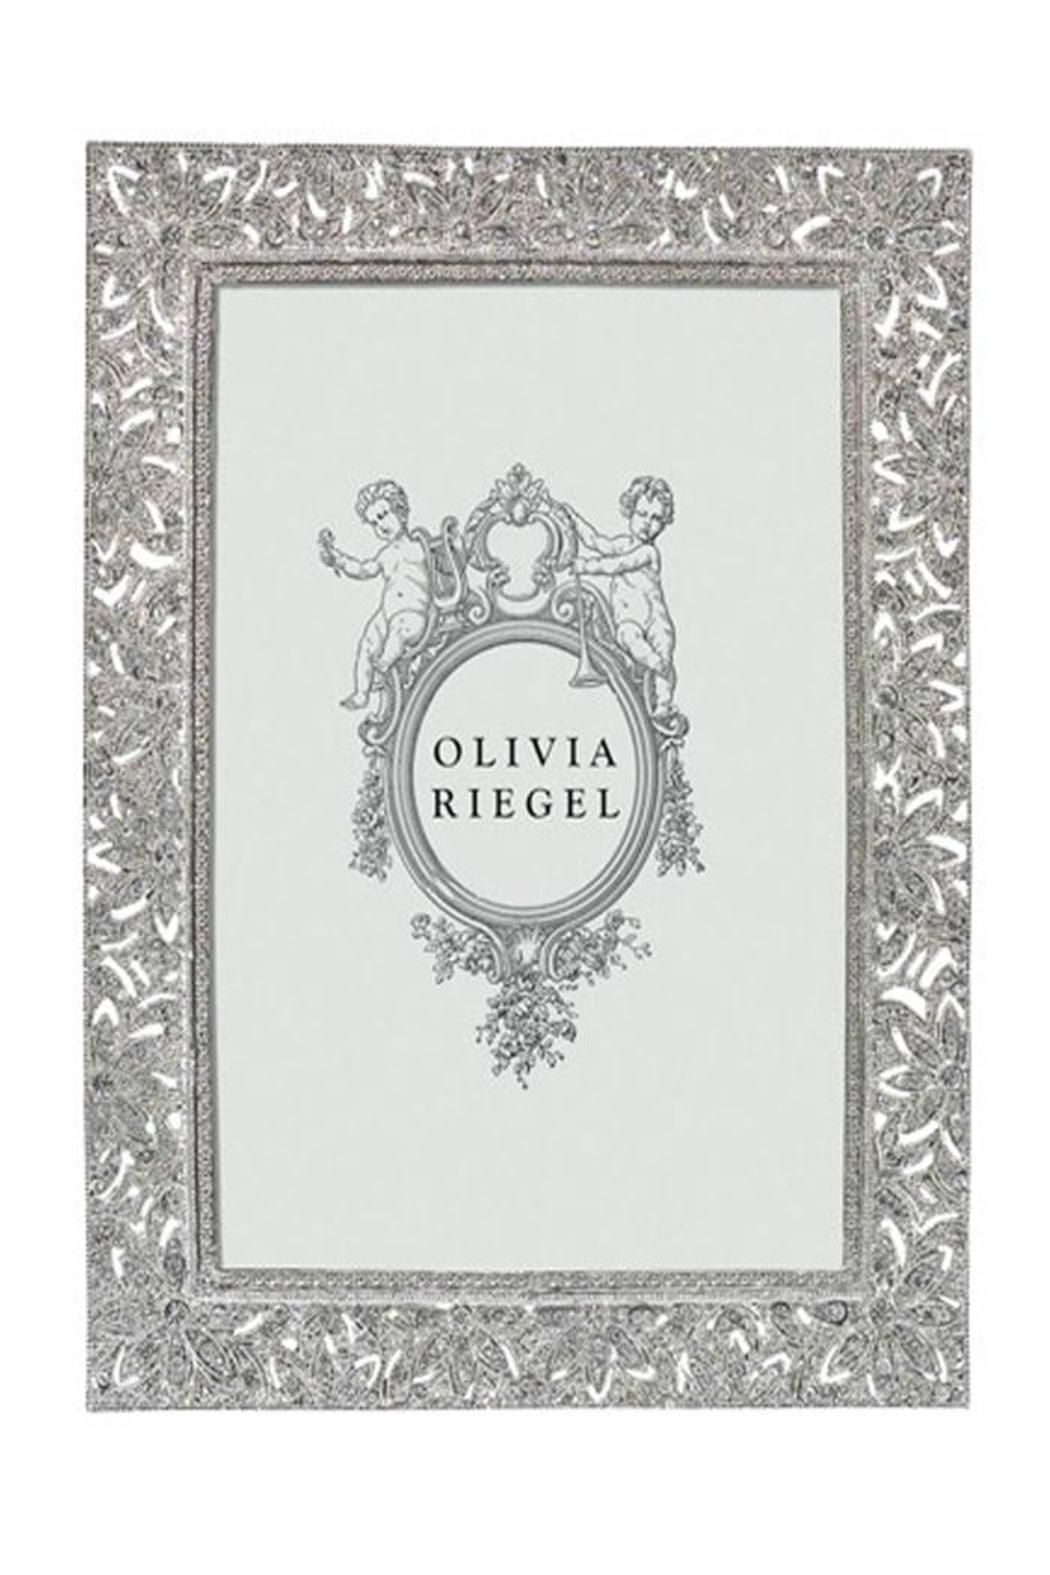 Olivia Riegel Swarovski Crystals Frame | Swarovski, Crystals and Silk